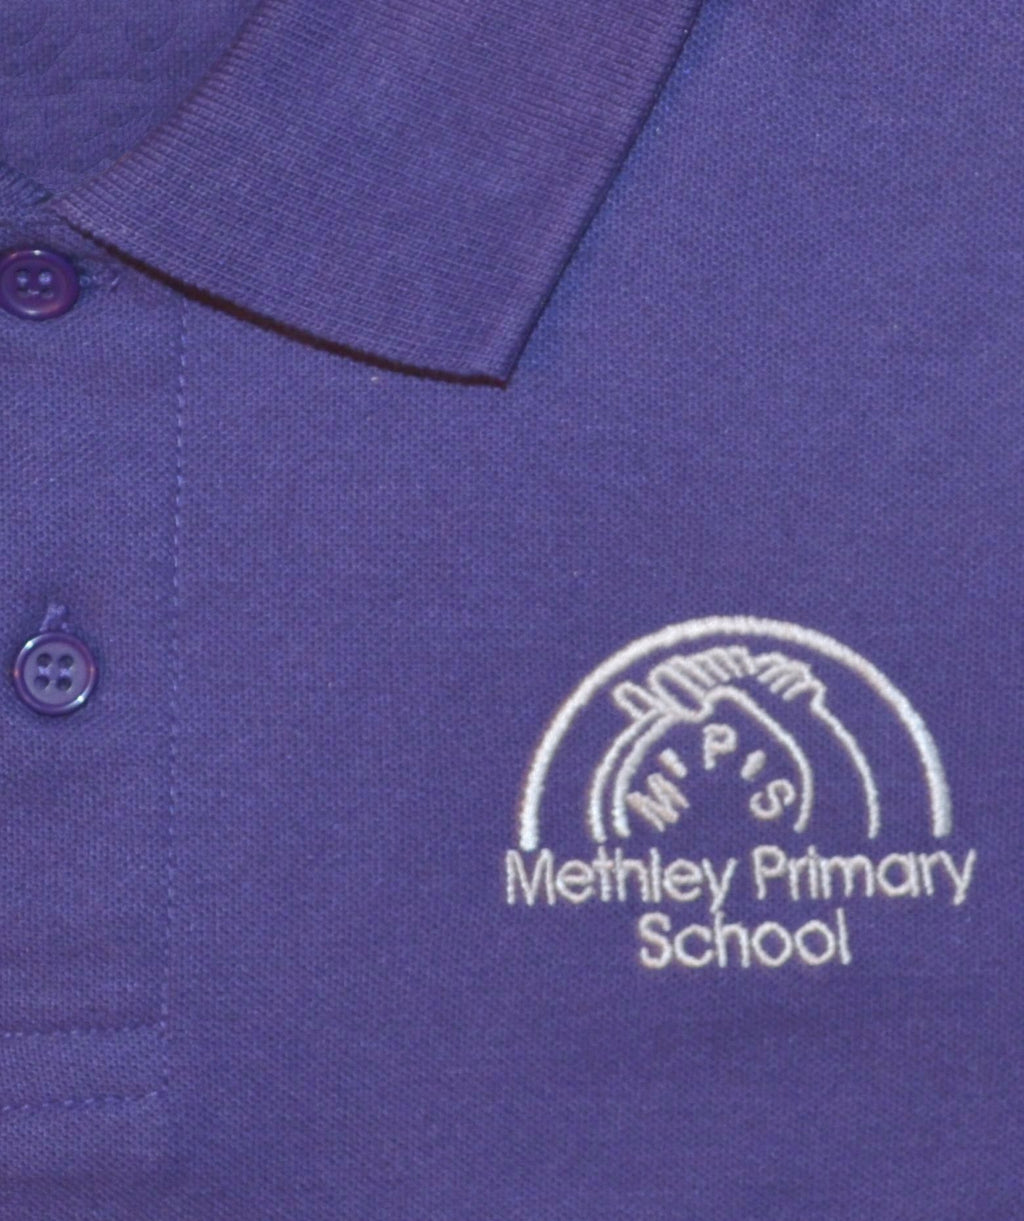 Methley Primary School Uniform Bundle 6